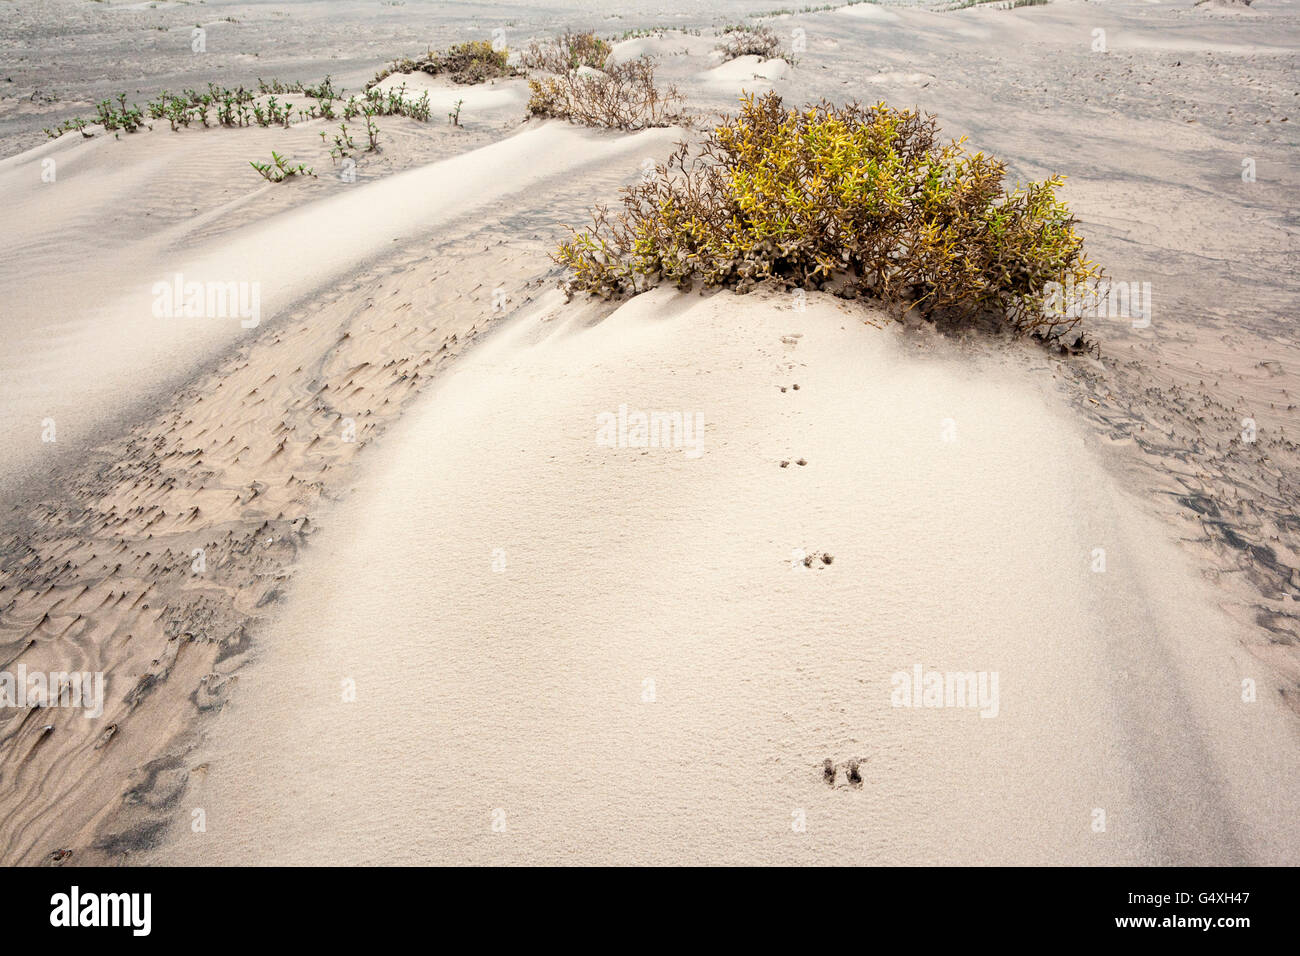 Animal Tracks in Dunes on South Padre Island, Texas, USA - Stock Image